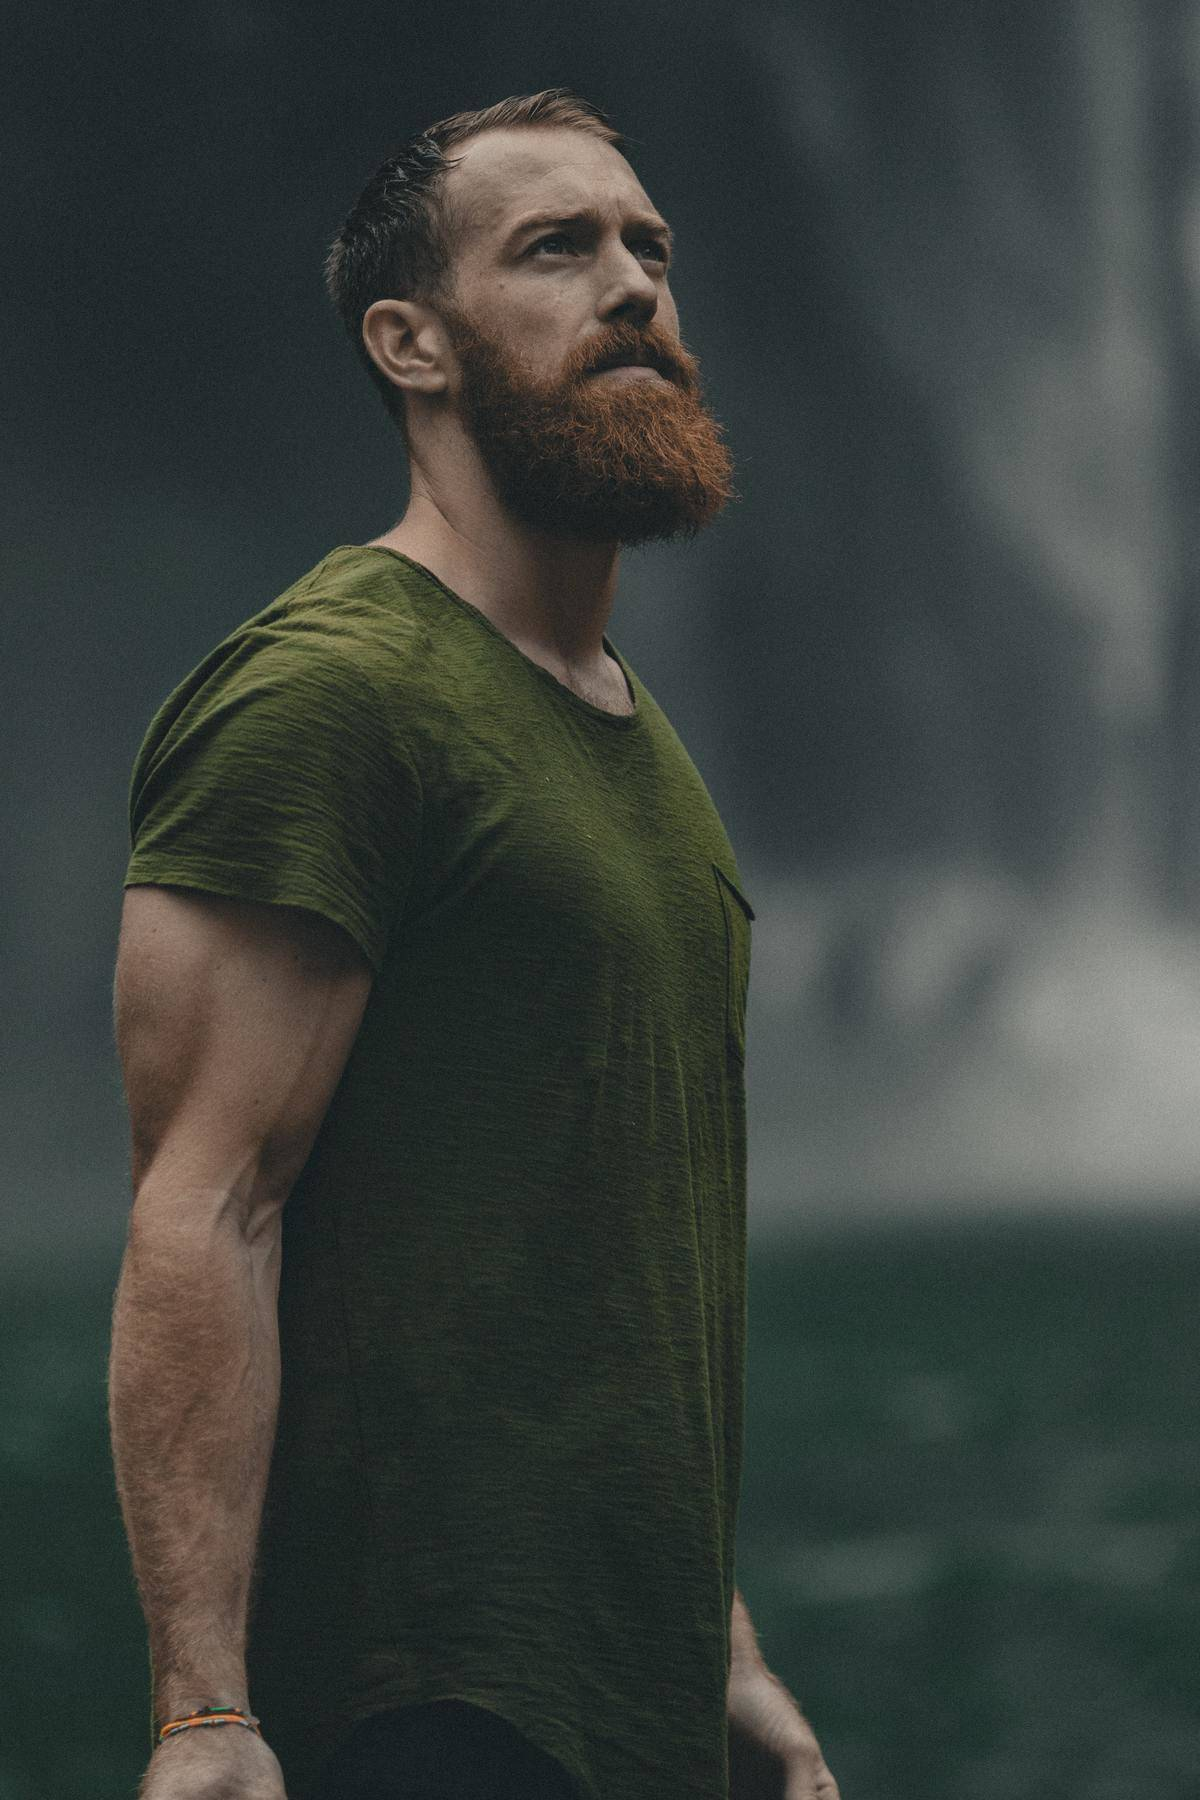 a guy with a beard looking into the distance